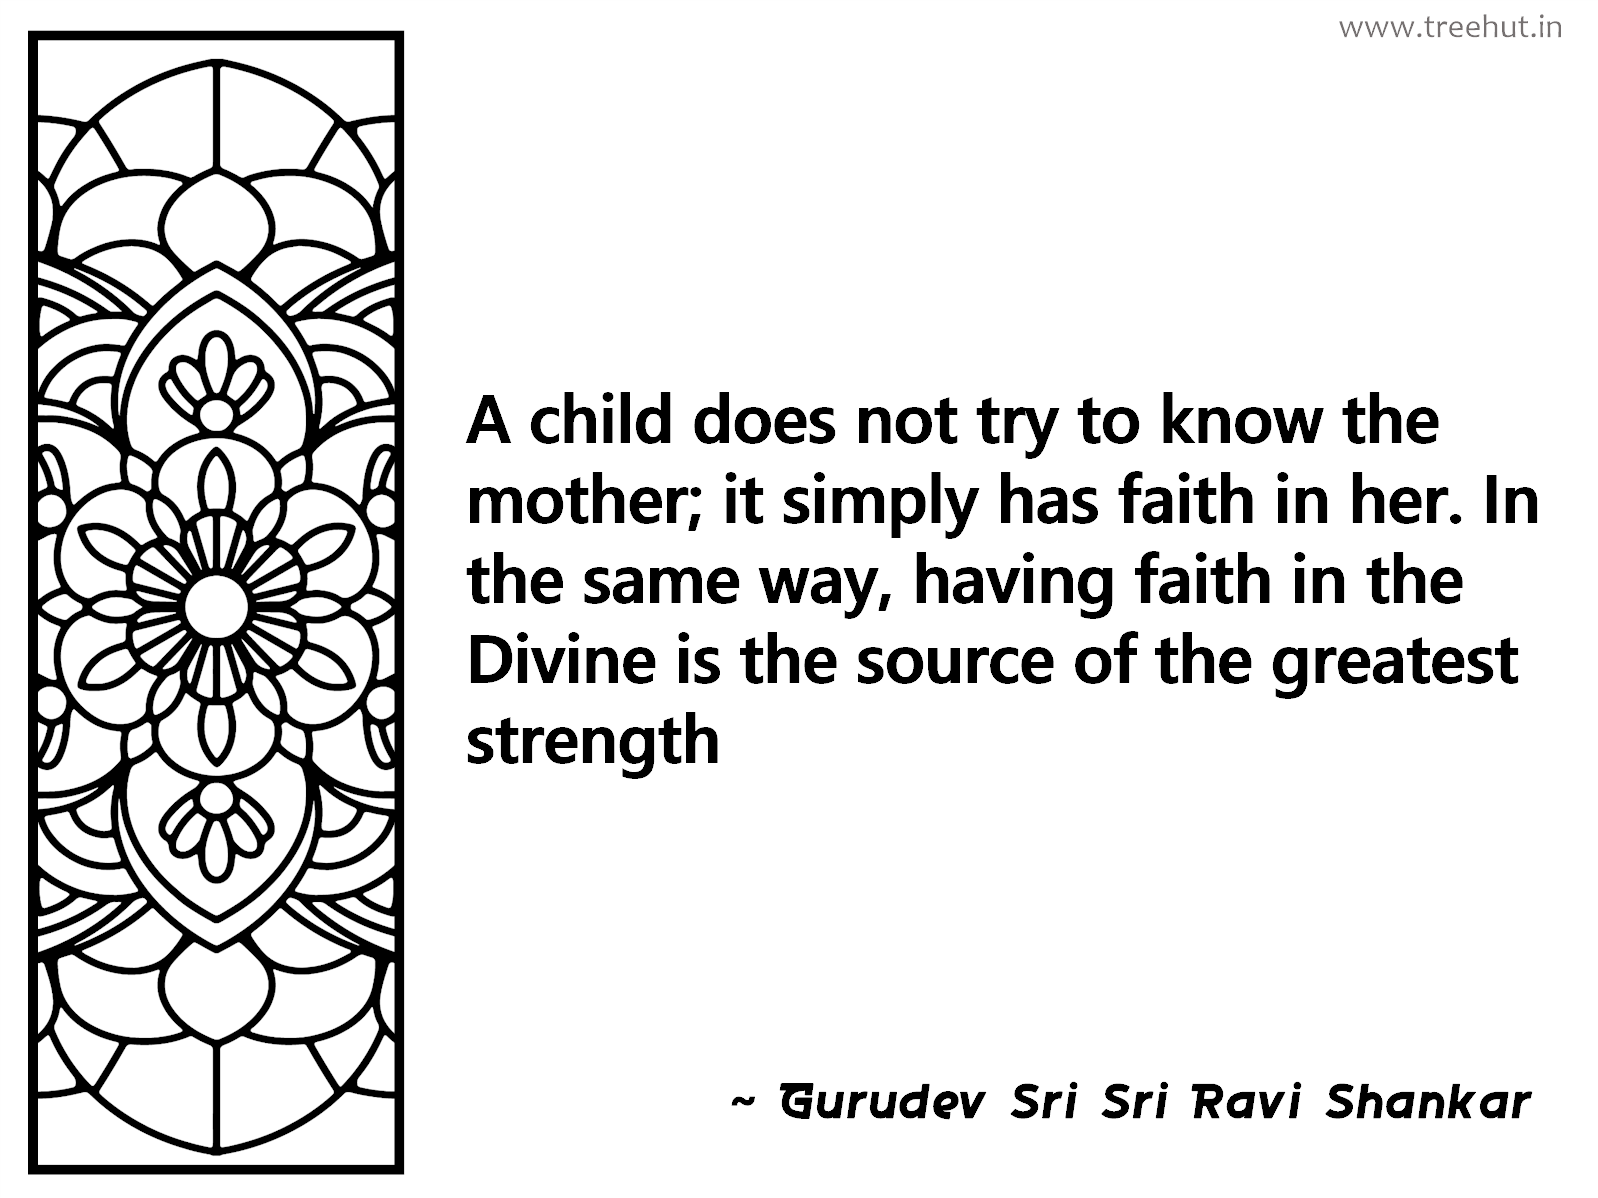 A child does not try to know the mother; it simply has faith in her. In the same way, having faith in the Divine is the source of the greatest strength Inspirational Quote by Gurudev Sri Sri Ravi Shankar, coloring pages